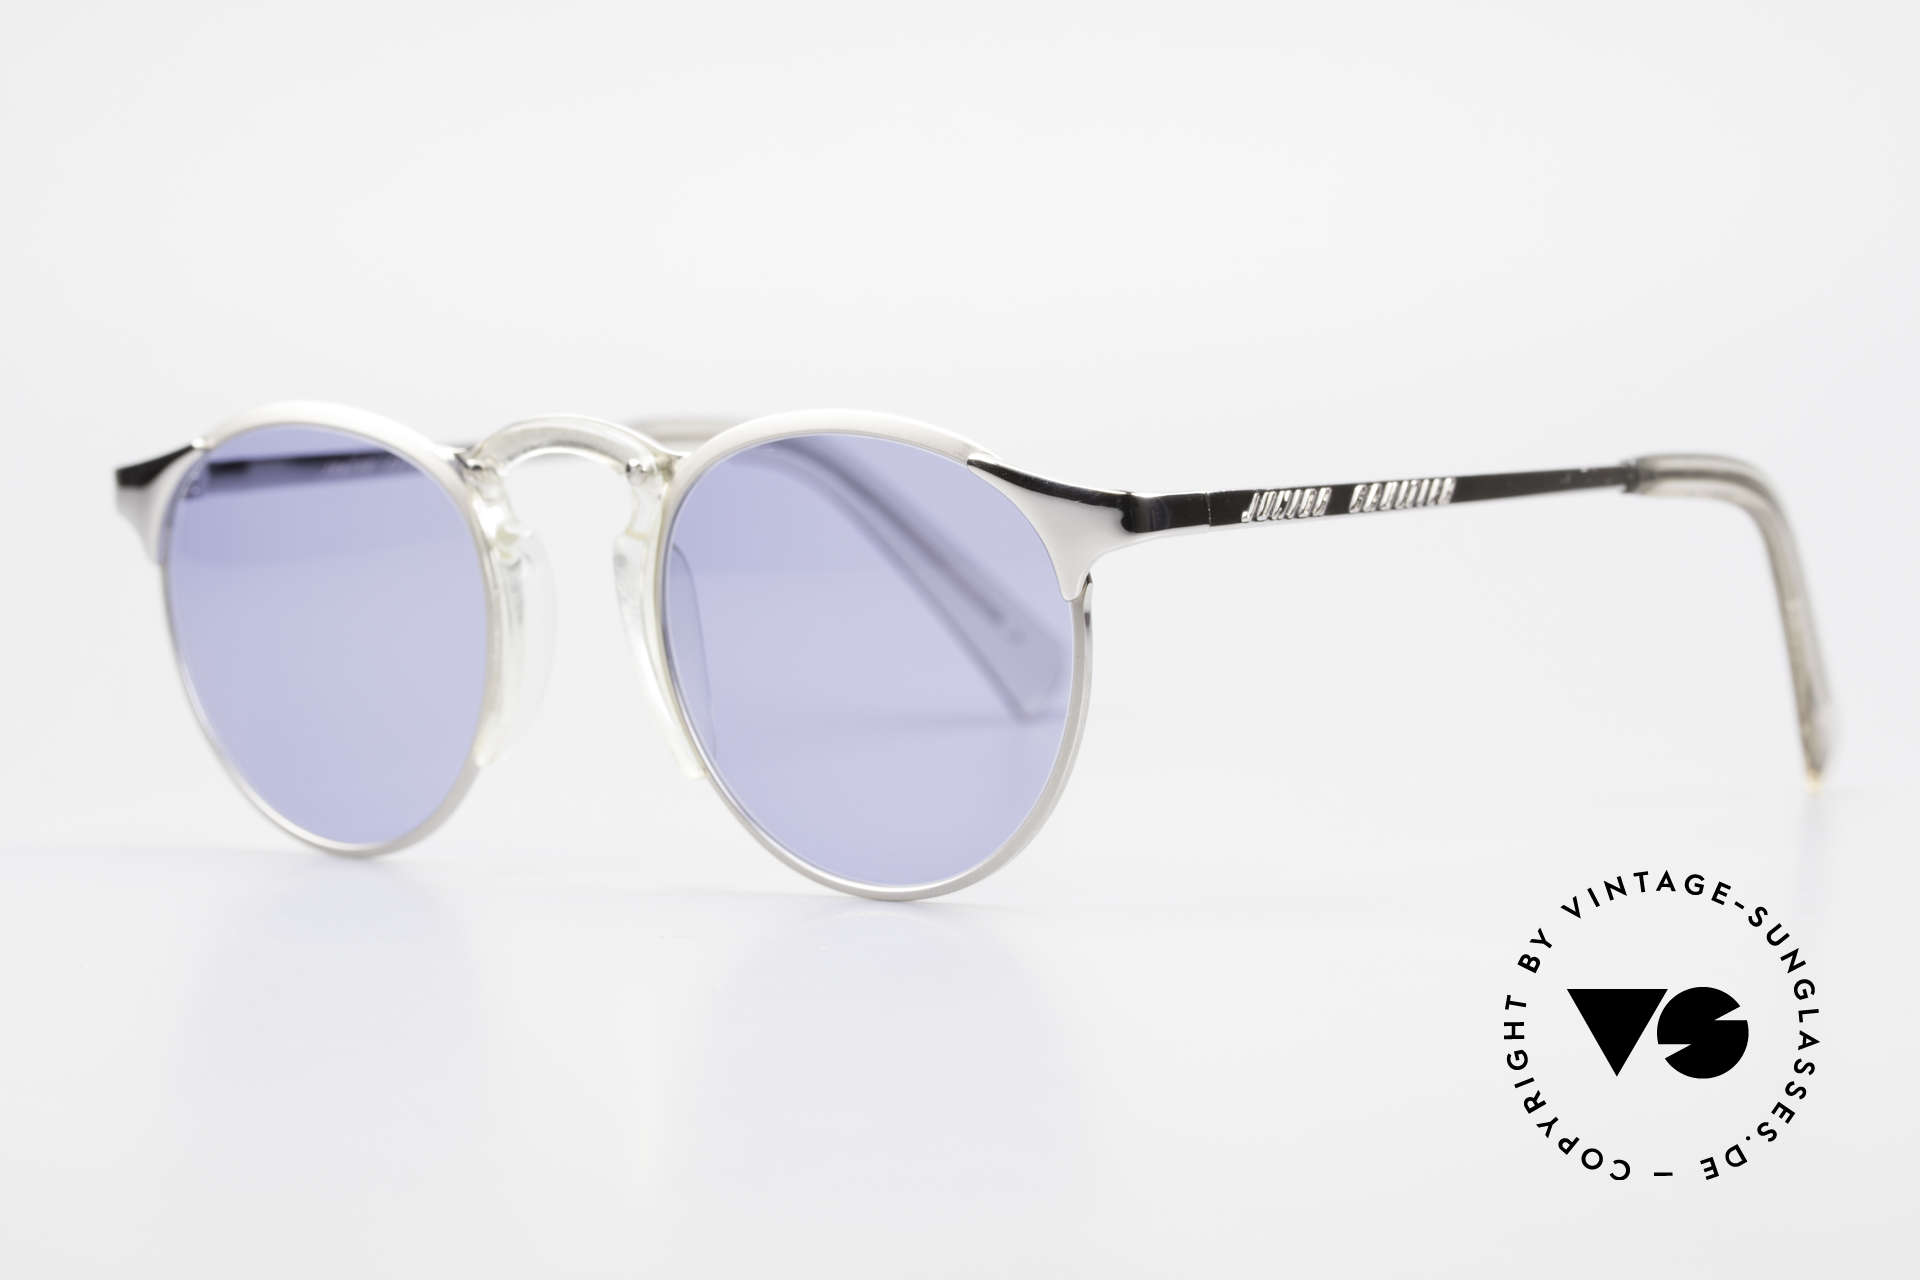 Jean Paul Gaultier 57-0174 Rare 90's JPG Panto Sunglasses, outstanding craftsmanship (frame made in JAPAN), Made for Men